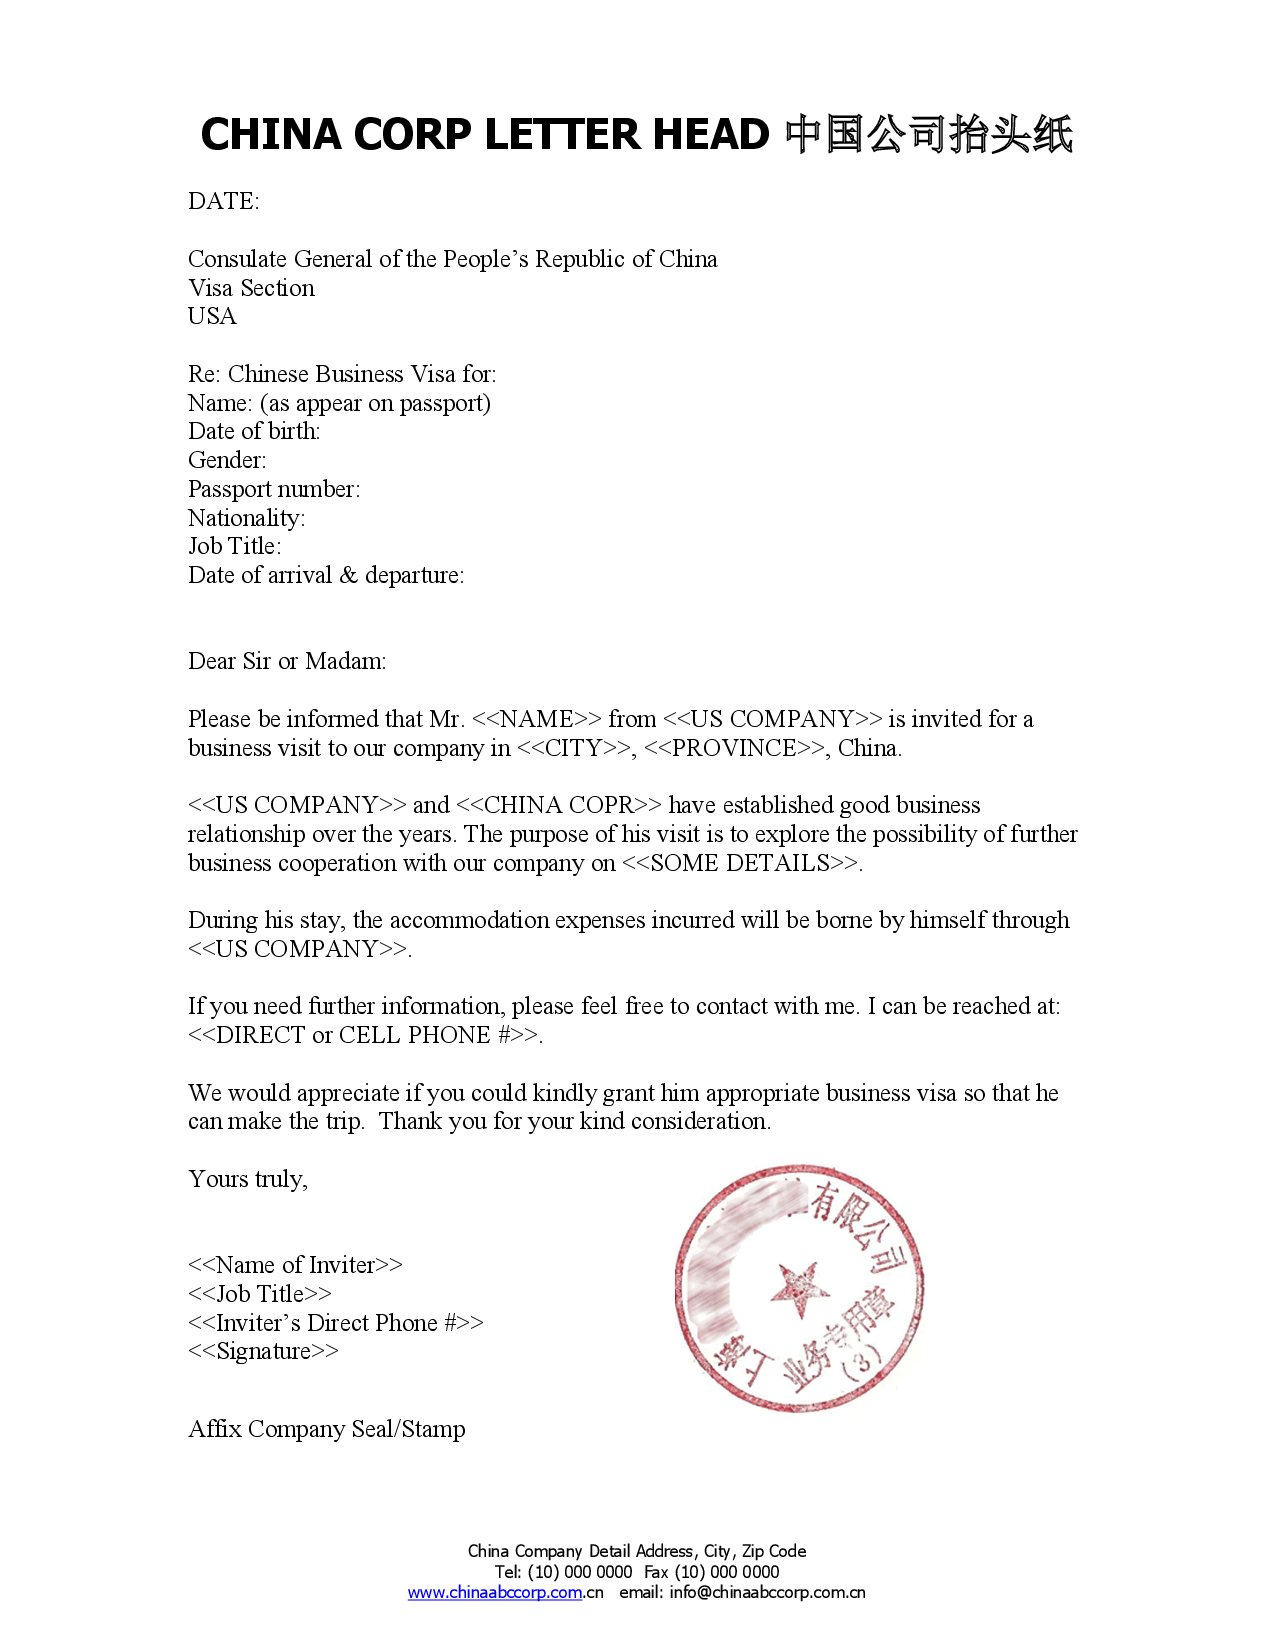 Format invitation letter for business visa to china lettervisa format invitation letter for business visa to china lettervisa invitation letter application letter sample stopboris Choice Image